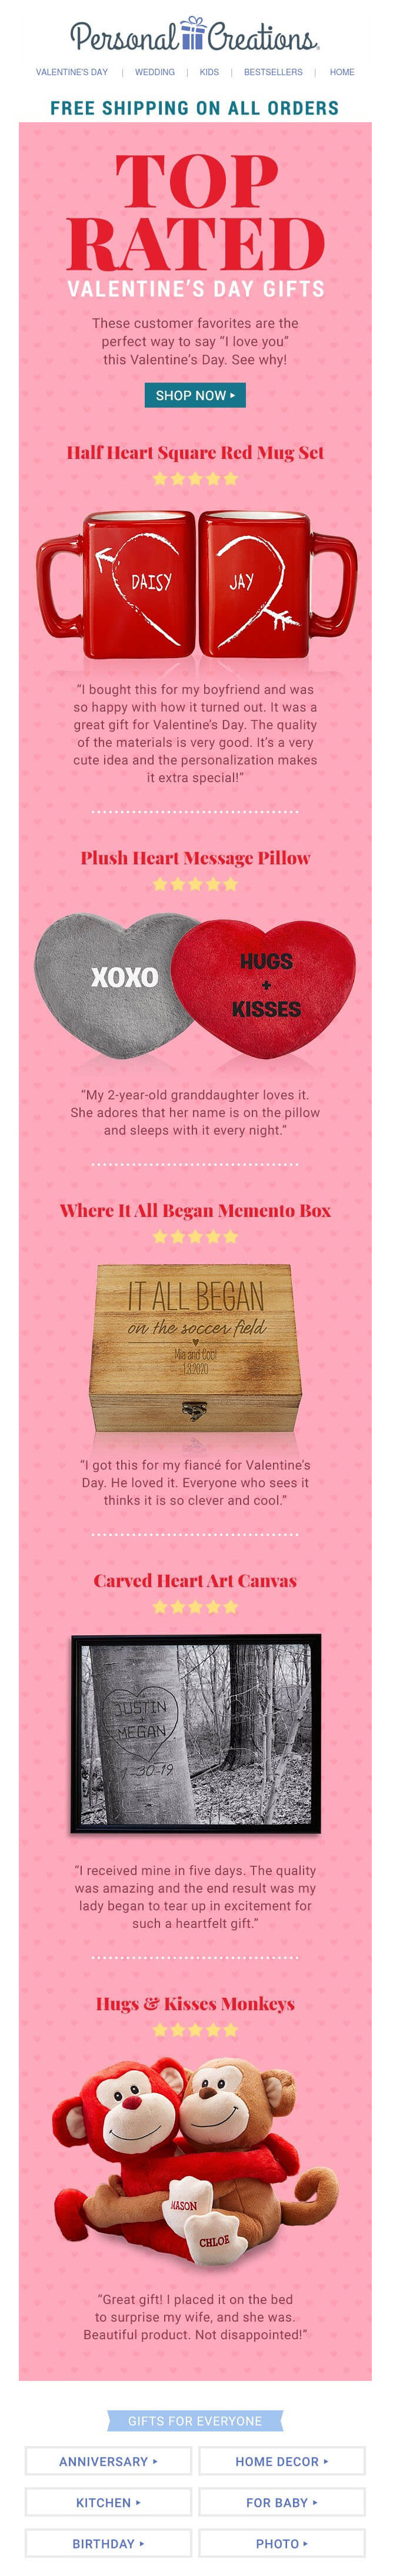 valentines-day-newsletter-personal-creations